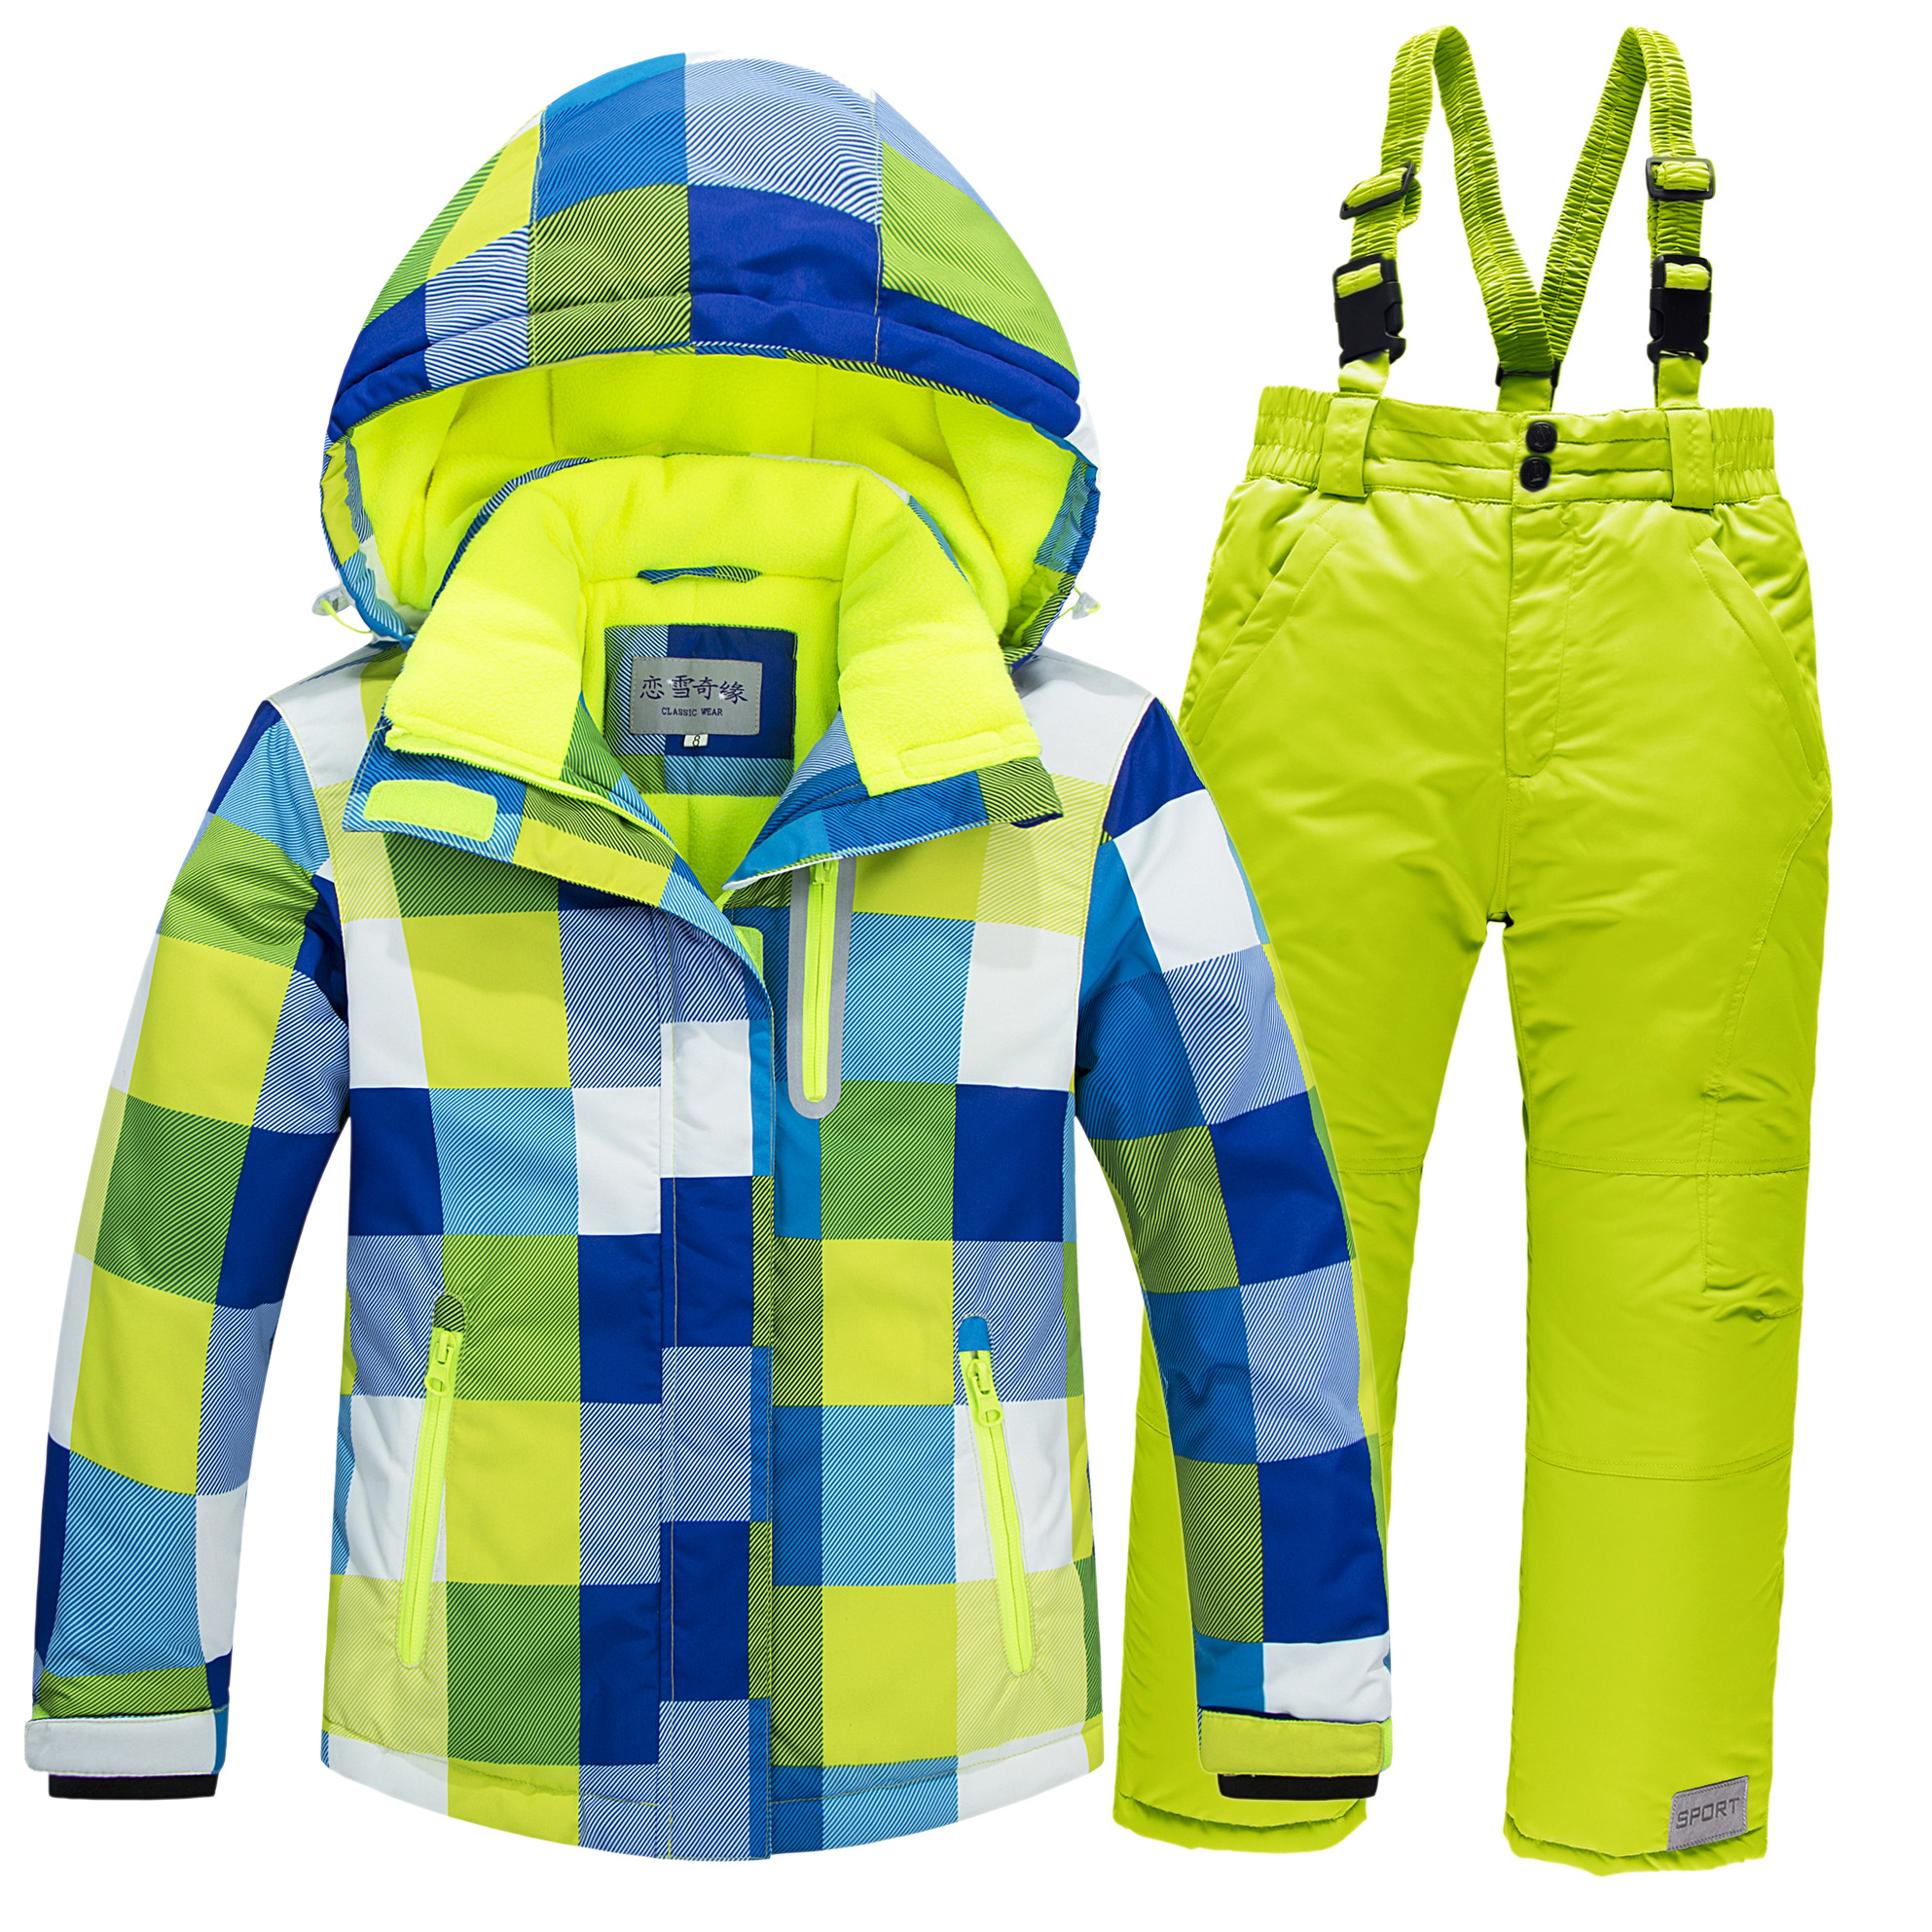 Winter Children Ski Suit Windproof Warm Girls Clothing Set Jacket + Overalls Boys Clothes Set Kids Snow Suits Family parenting autumn winter boys girls clothes sets sports suits children warm clothing kids cartoon jacket pants long sleeved christmas suit